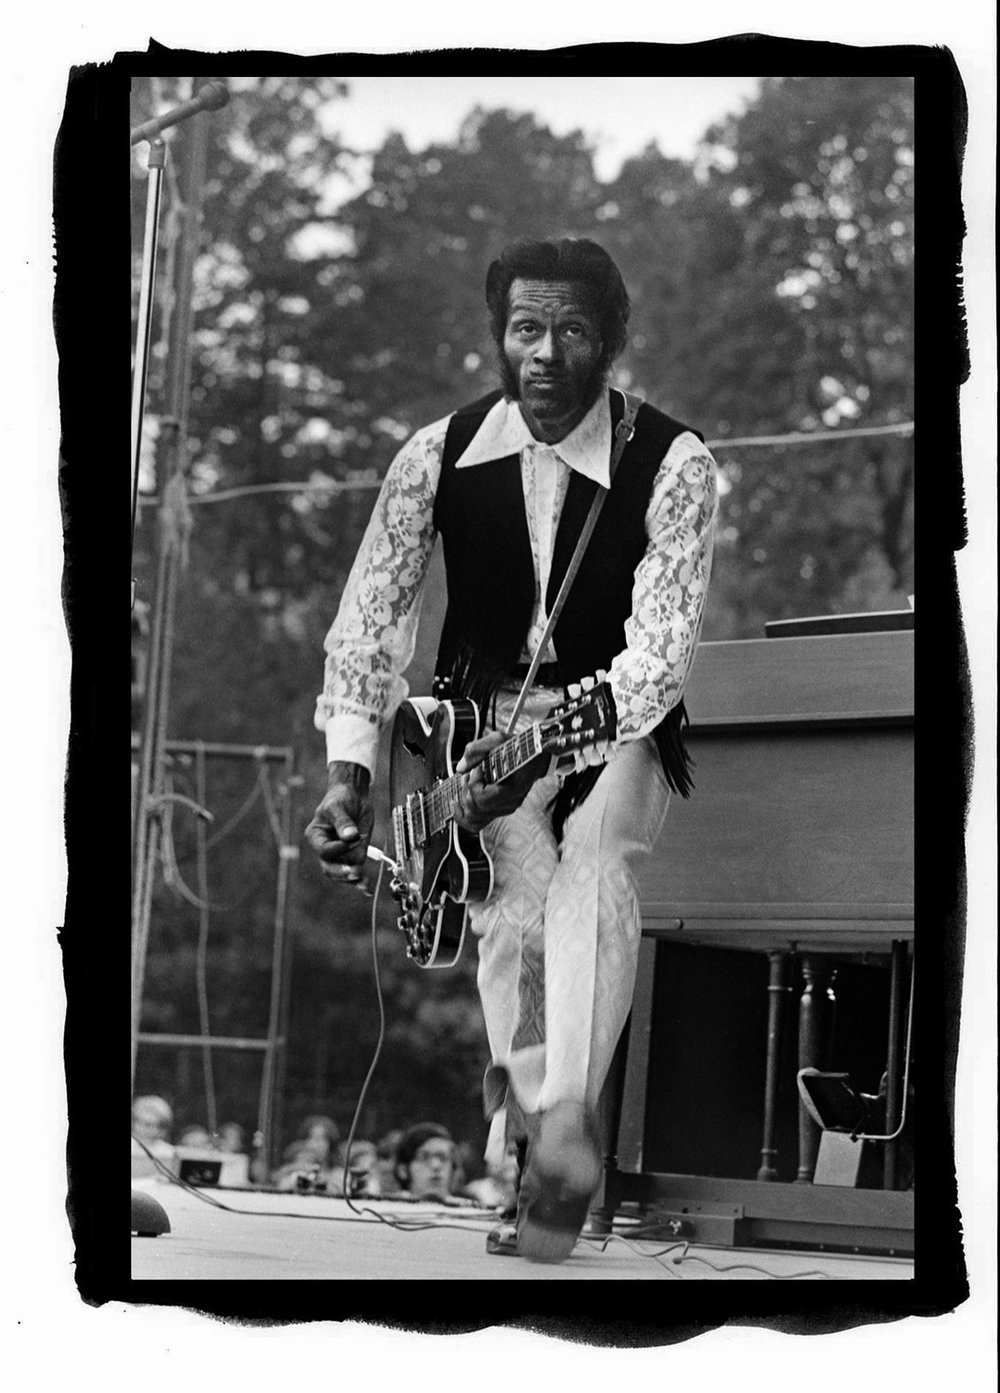 024-chuck berry for offset-new_1500.jpg